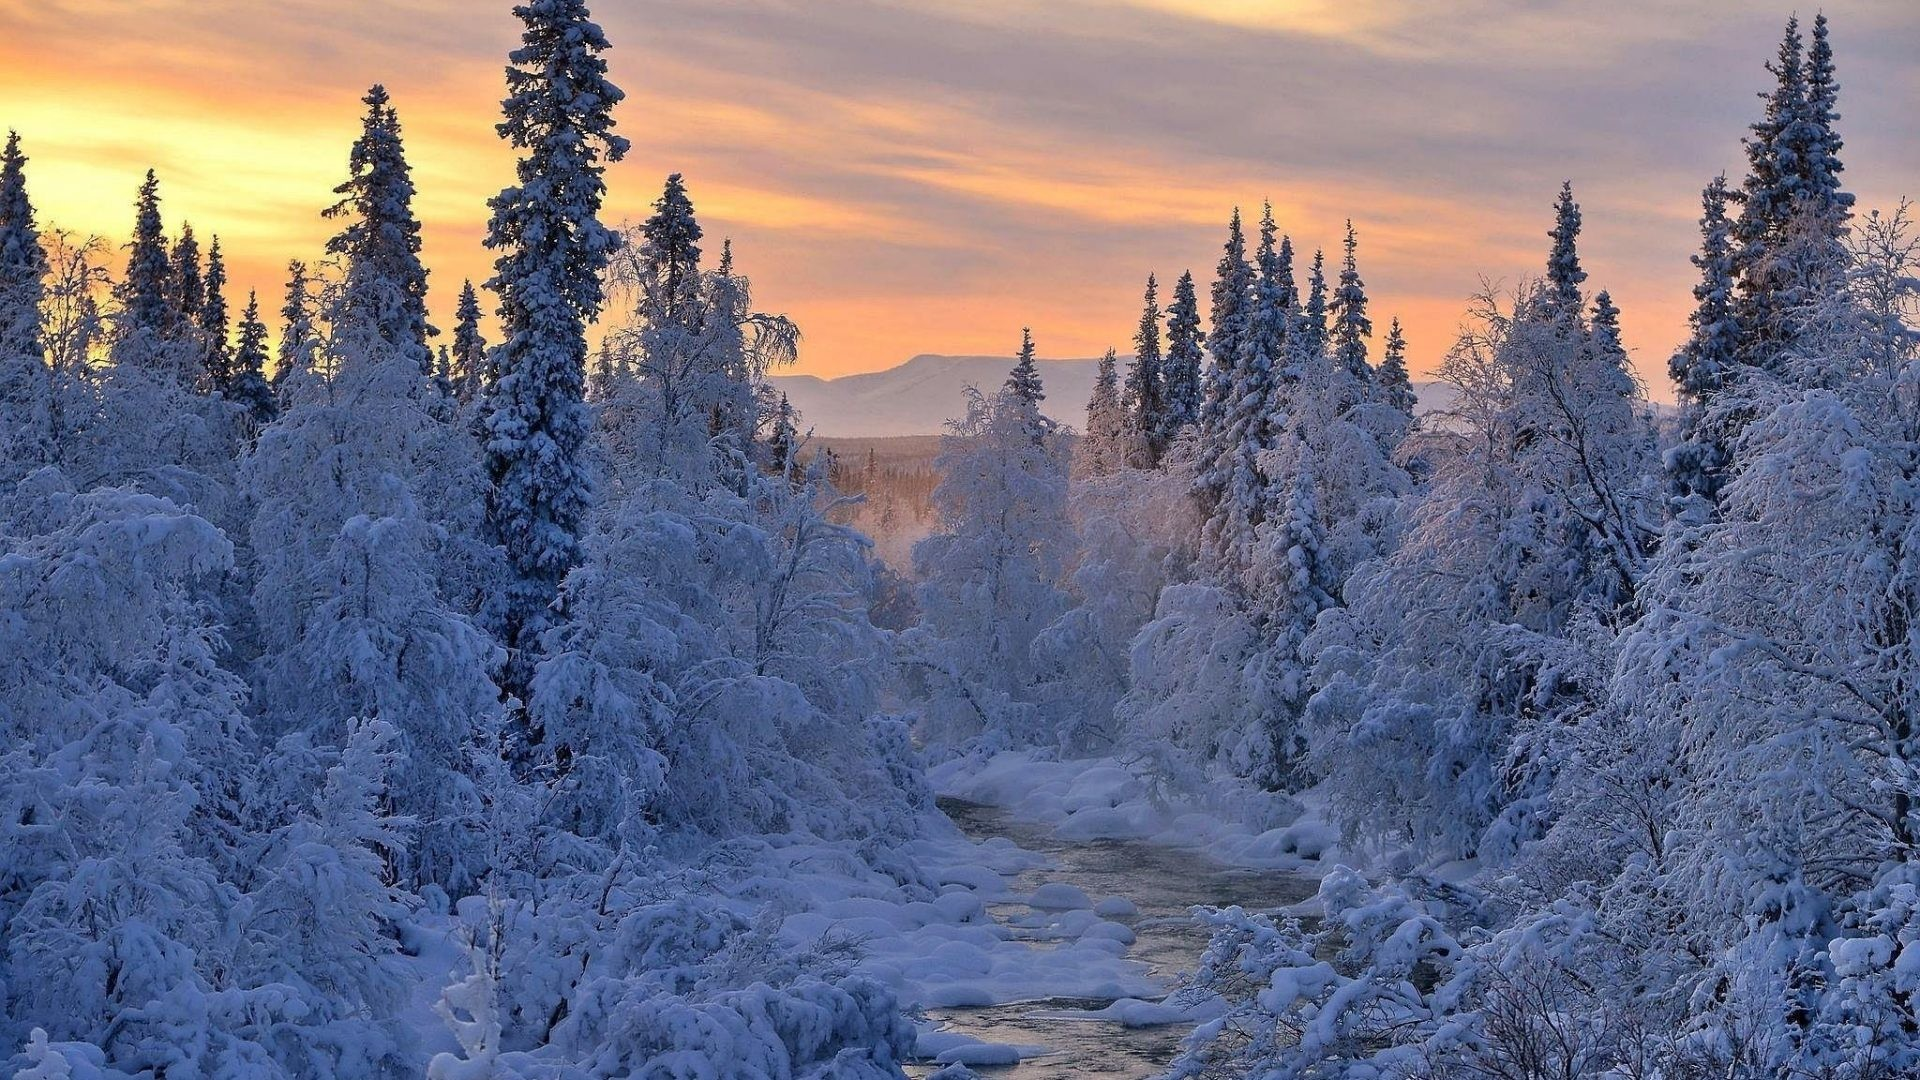 Rivers – Landscape River Winter Sunset Snow Beautiful Nature Hd Wallpapers  Free Download for HD 16